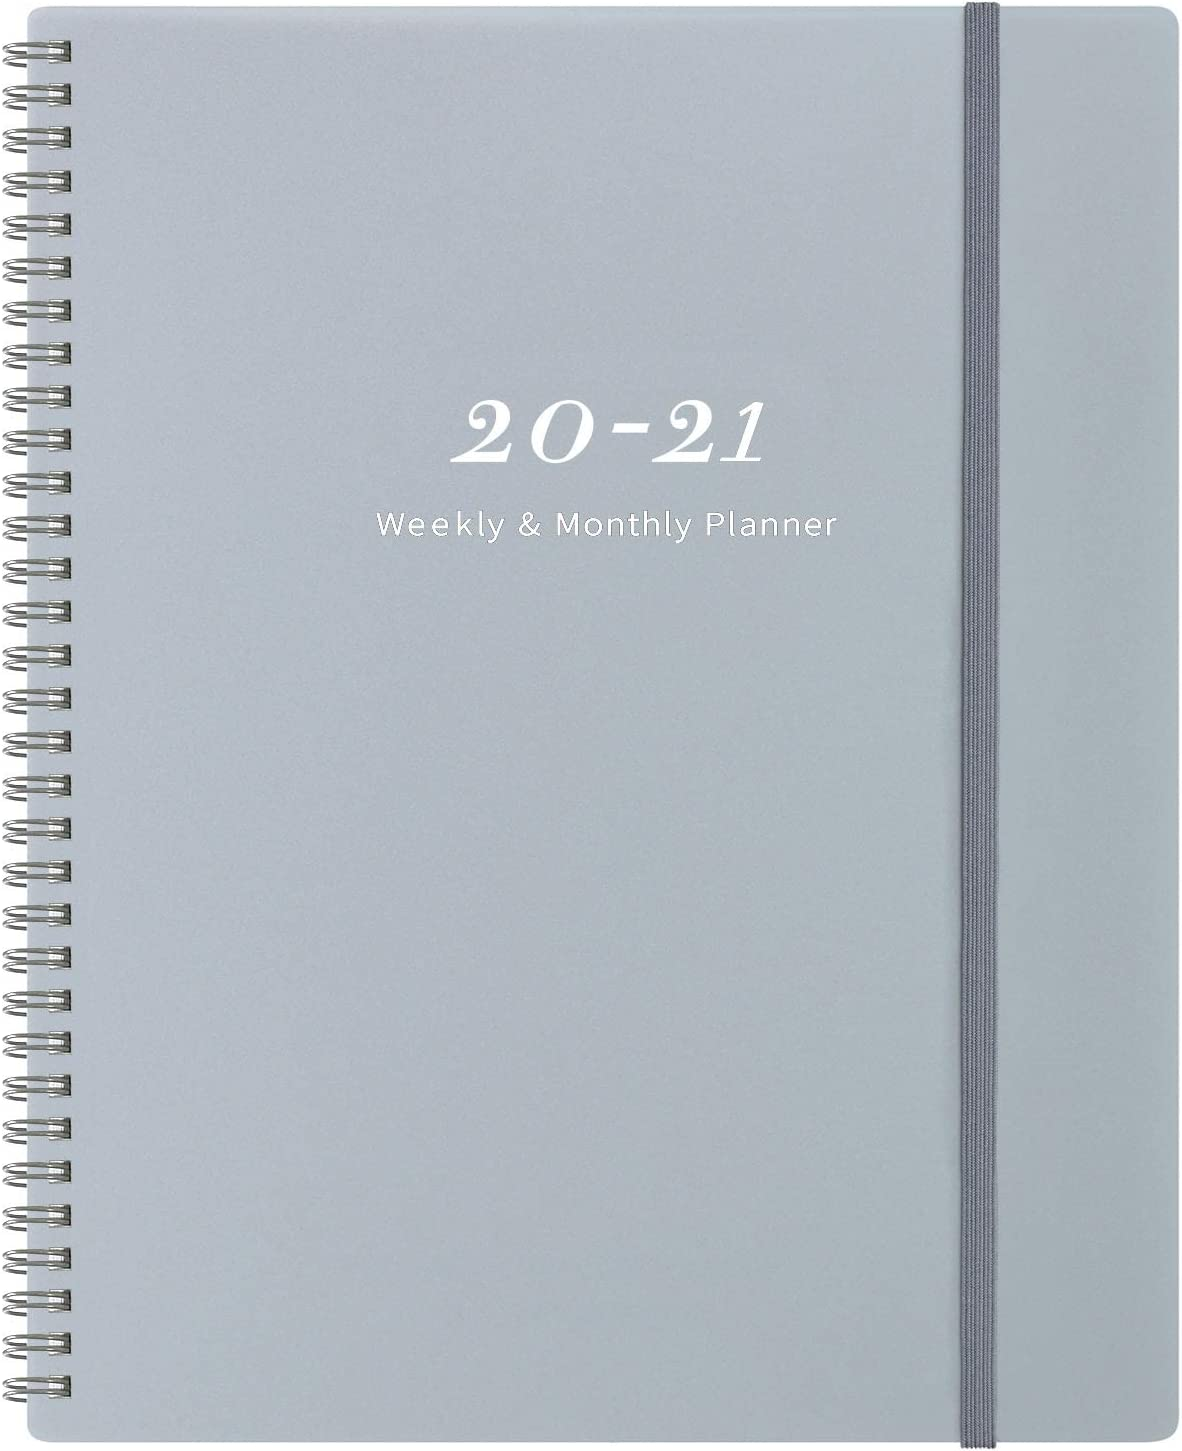 "2020-2021 Planner 9"" x 11""- Weekly & Monthly Planner with Tabs, Elastic Closure and Thick Paper, Back Pocket with 21 Notes Pages"